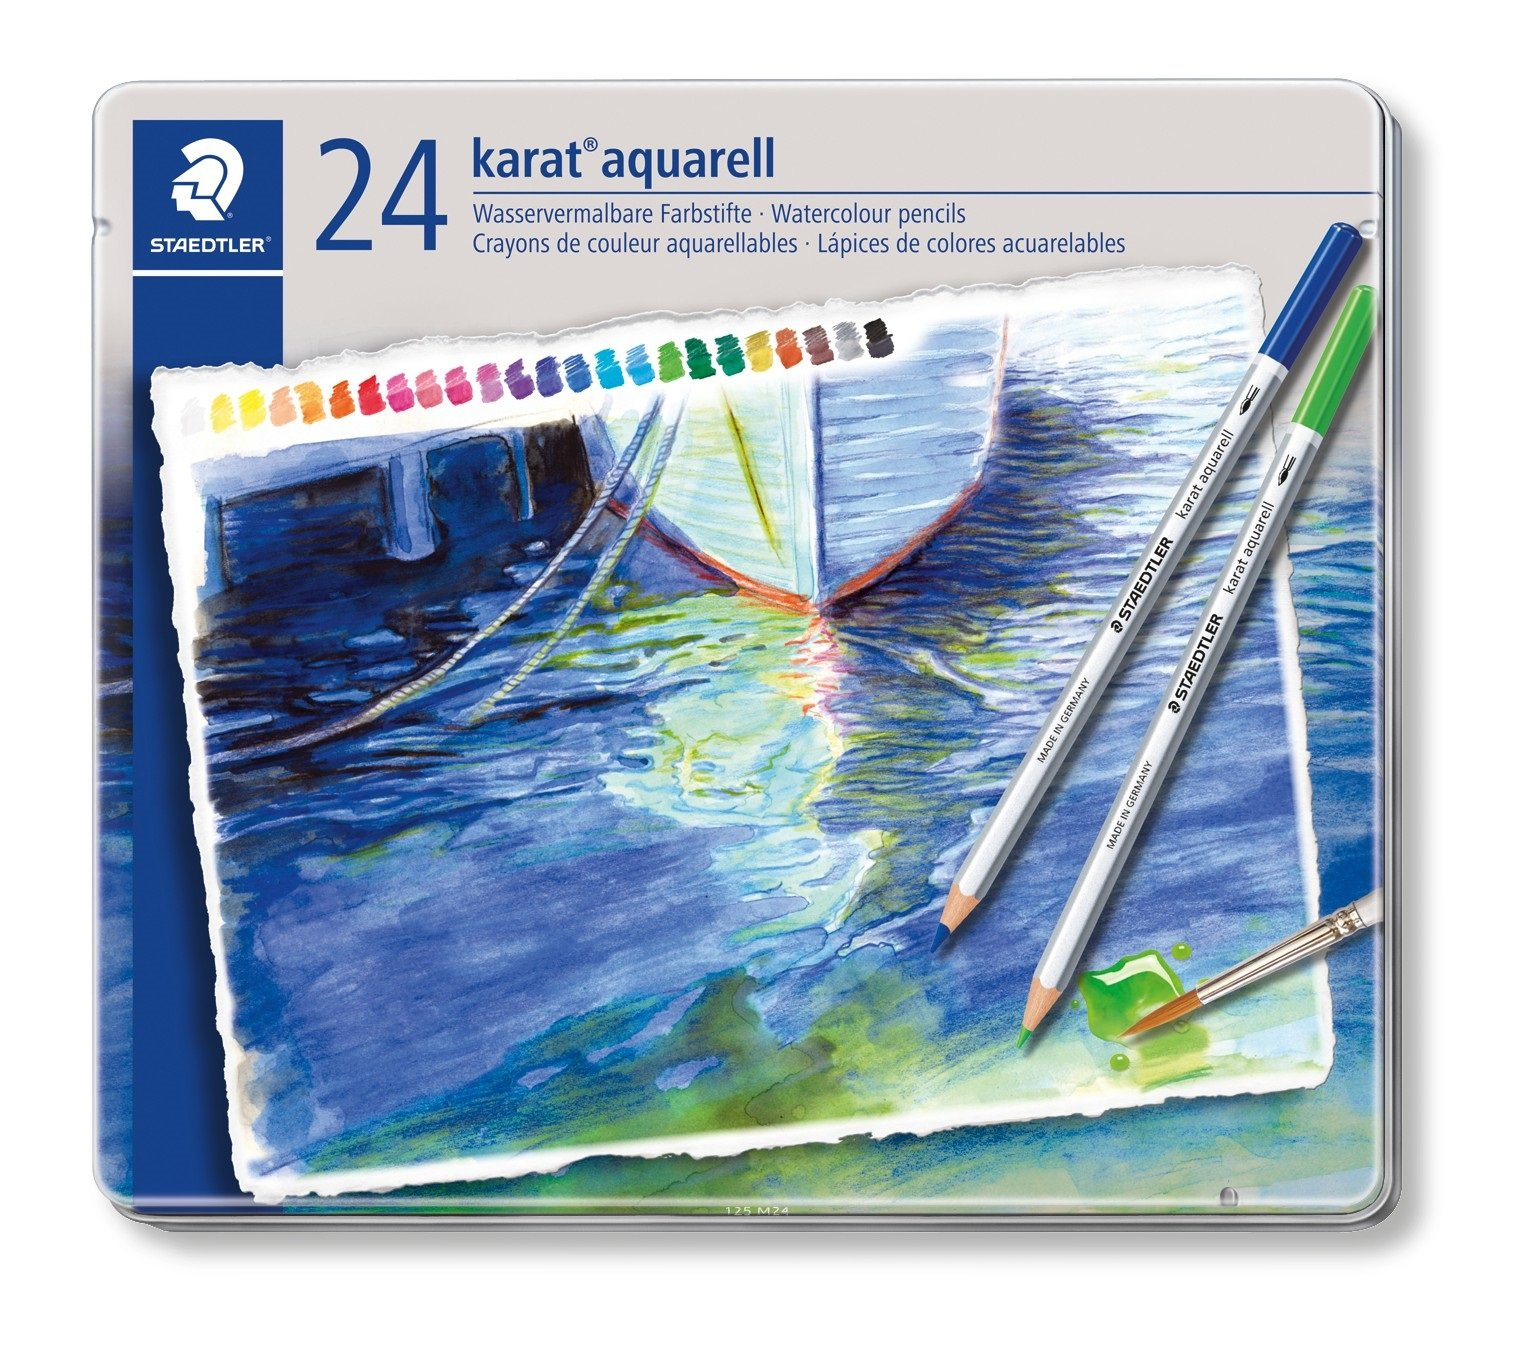 Staedtler Karat Aquarell Premium Watercolor Pencils, Set of 24 Colors (125M24) by STAEDTLER